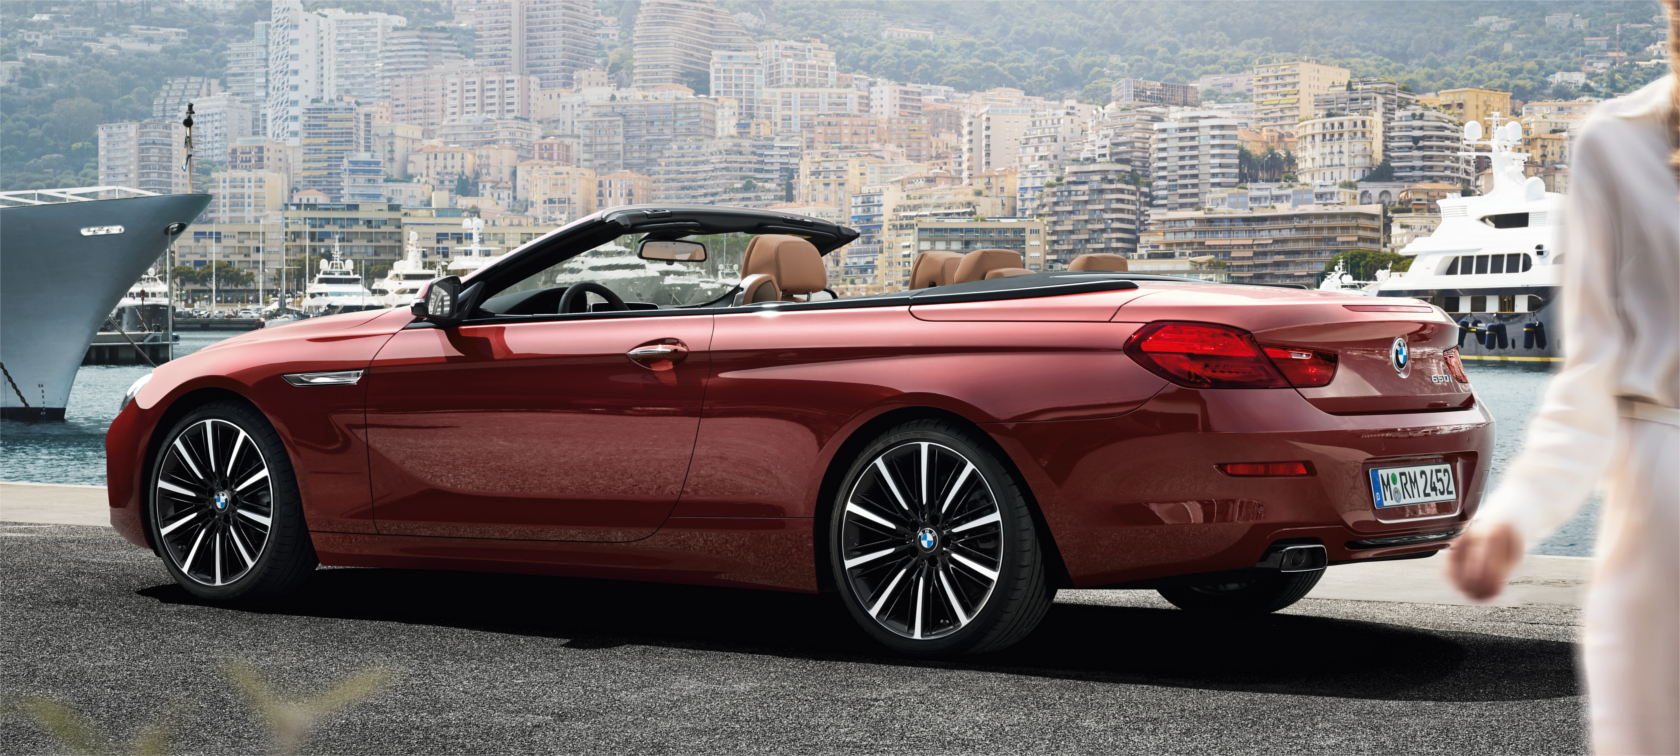 The BMW 6 Series Convertible